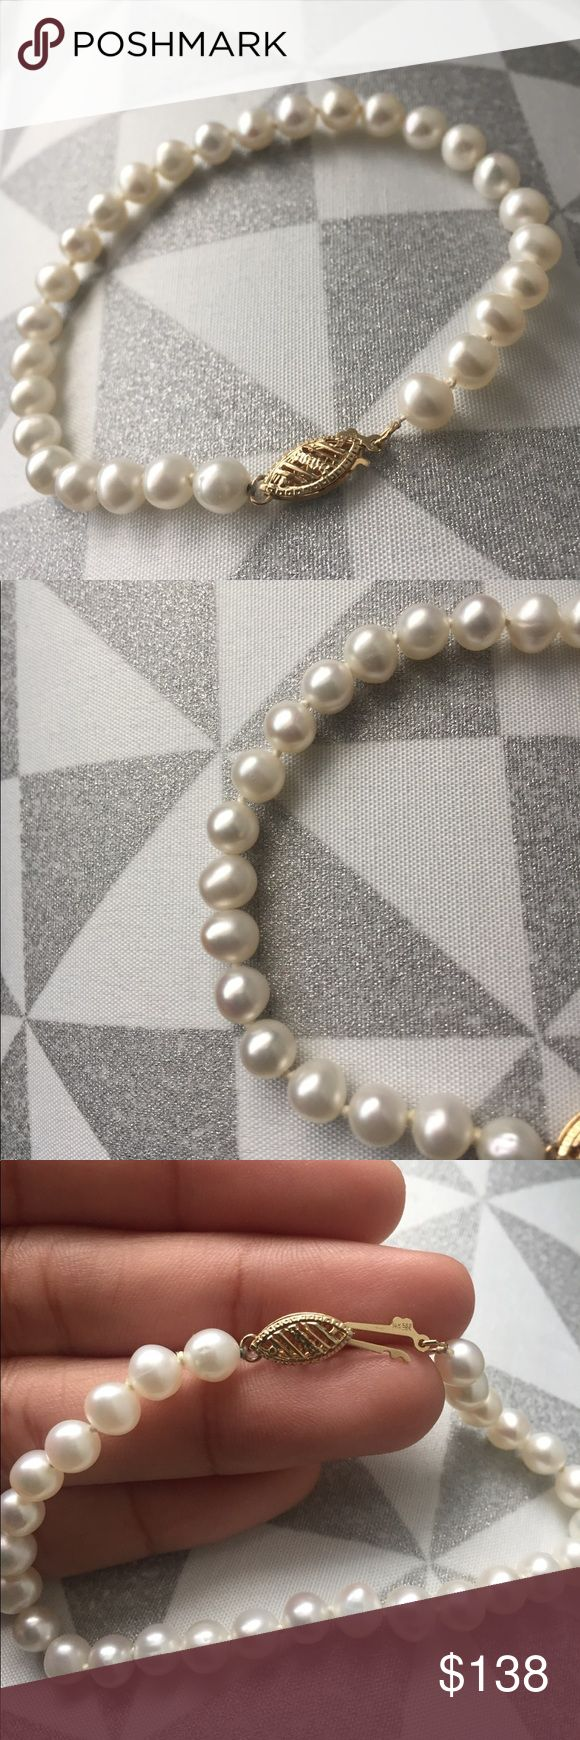 MAJOR PRICE DROP!! 🔥 14K Gold Pearl Bracelet ✨ From $138 to now $88! FIRM. Words can not evennnn describe how beautiful this bracelet is! The pearls give off an ivory/pink luster and the 14K gold fish hook closure works with no flaws. These pearls are authentic, the only thing i am unsure about is whether they're freshwater pearls or cultured. I dont know much about pearls nor wear them much (hence why they're being sold lol) but im sure there's someone out there who knows more and will…